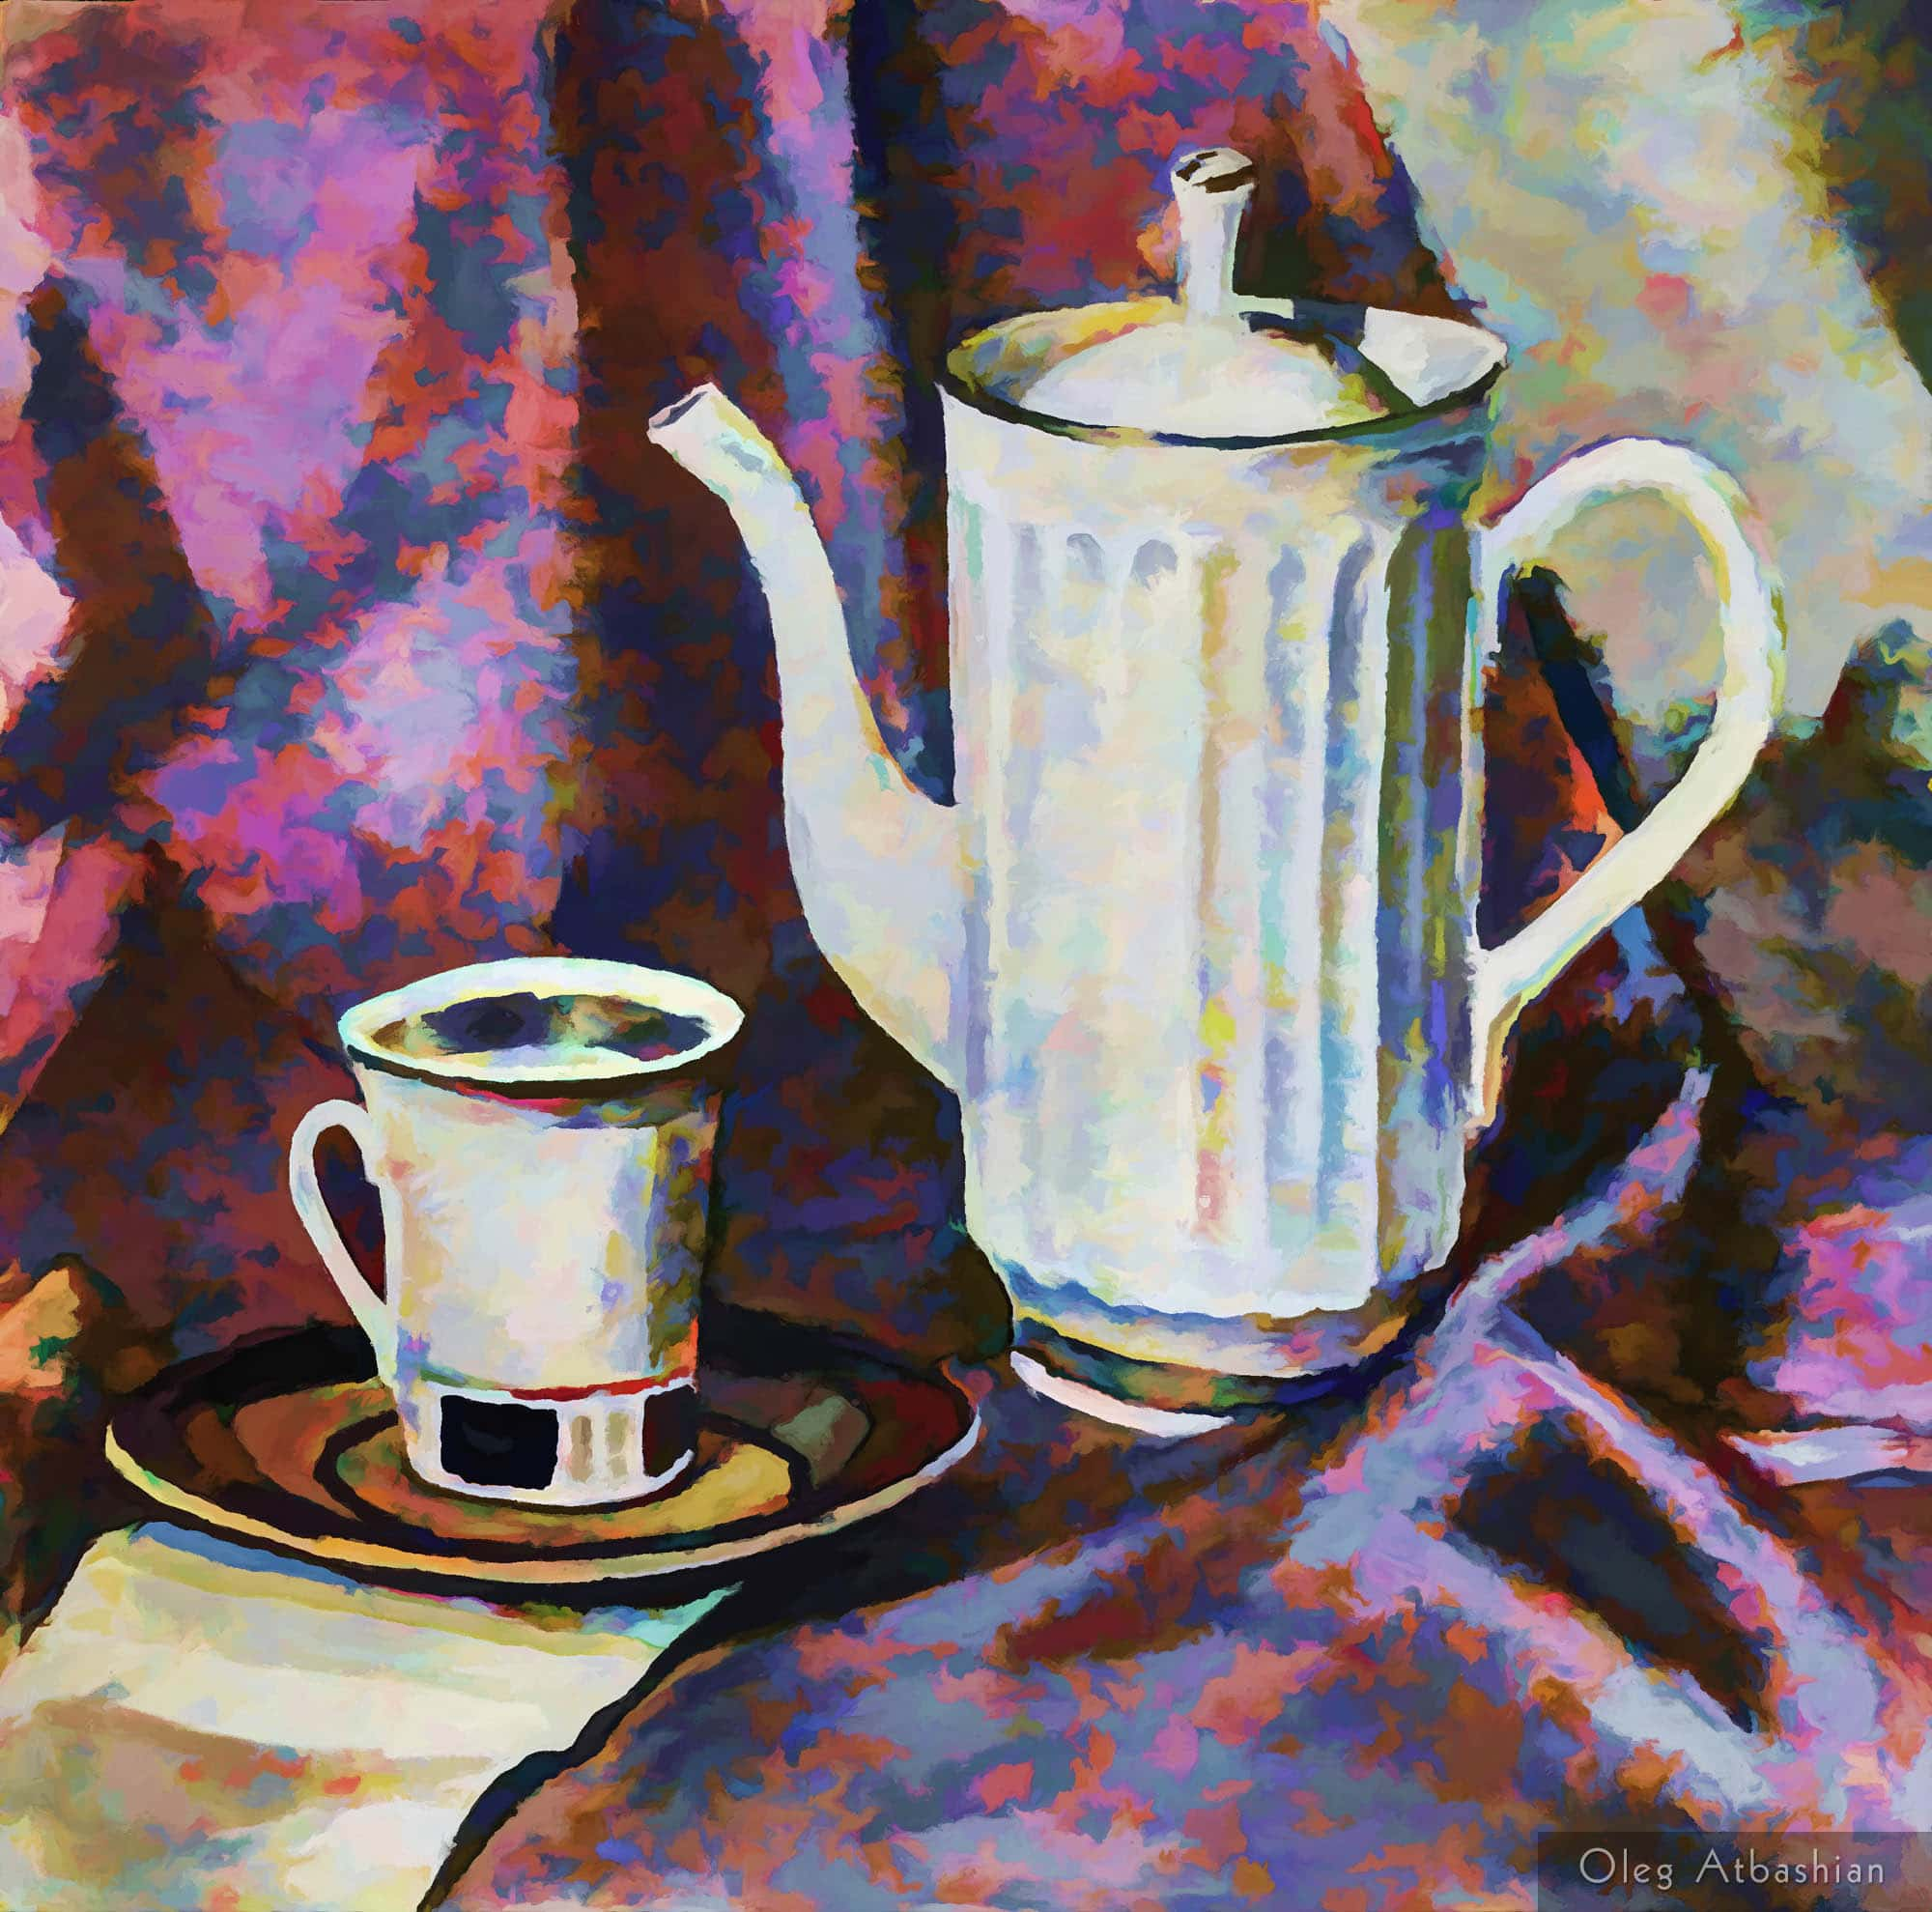 China and Silk: Still Life with a Teapot